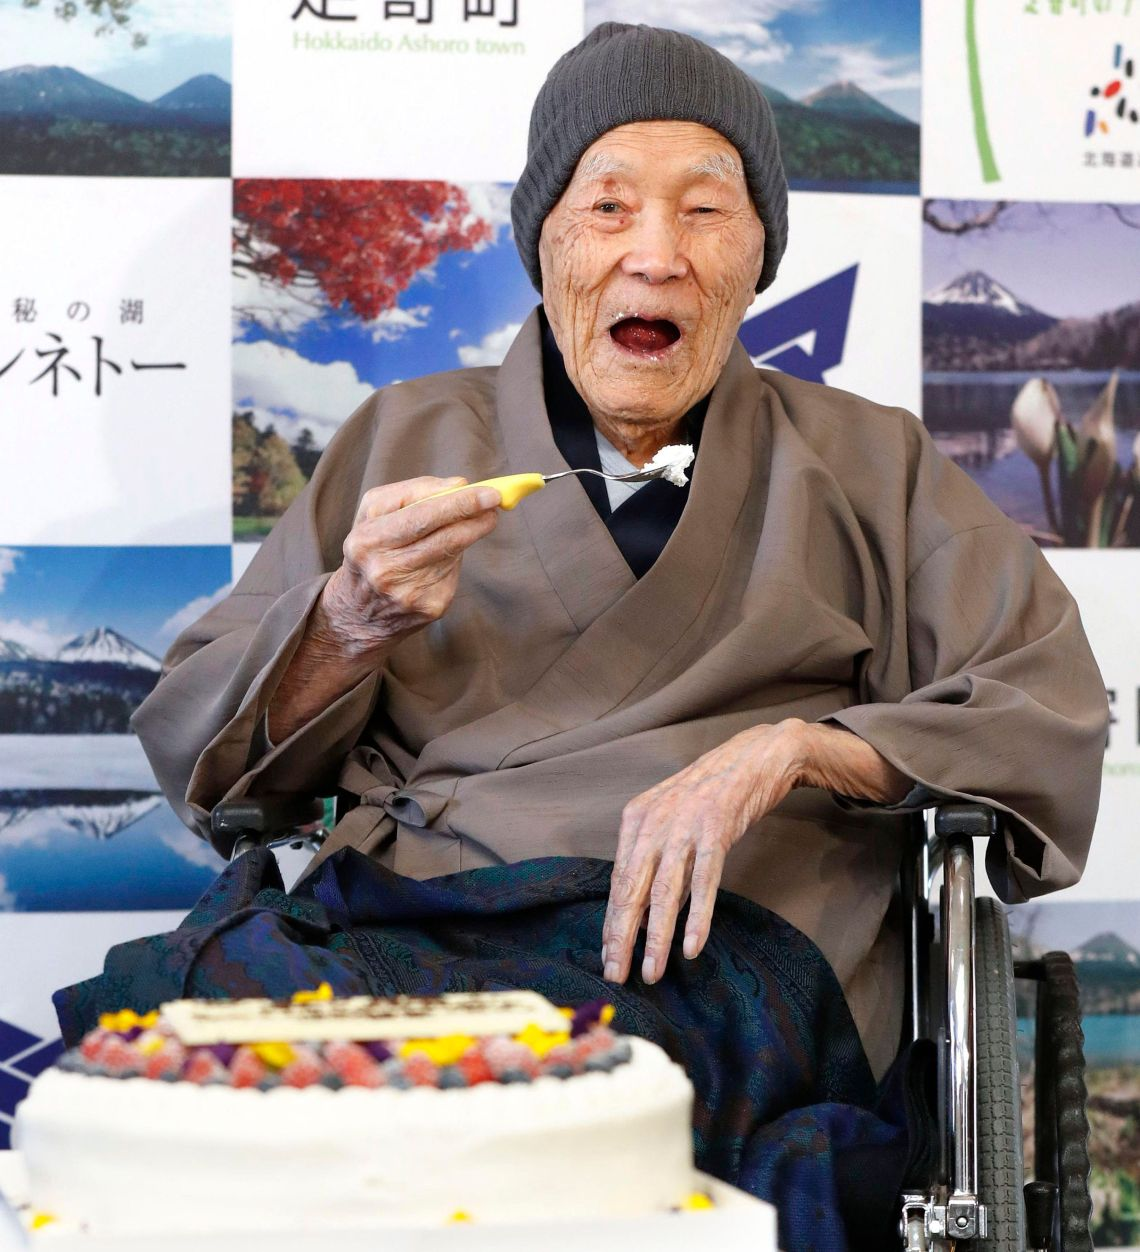 Masazo Nonaka, the world's oldest man has died at the age of 113